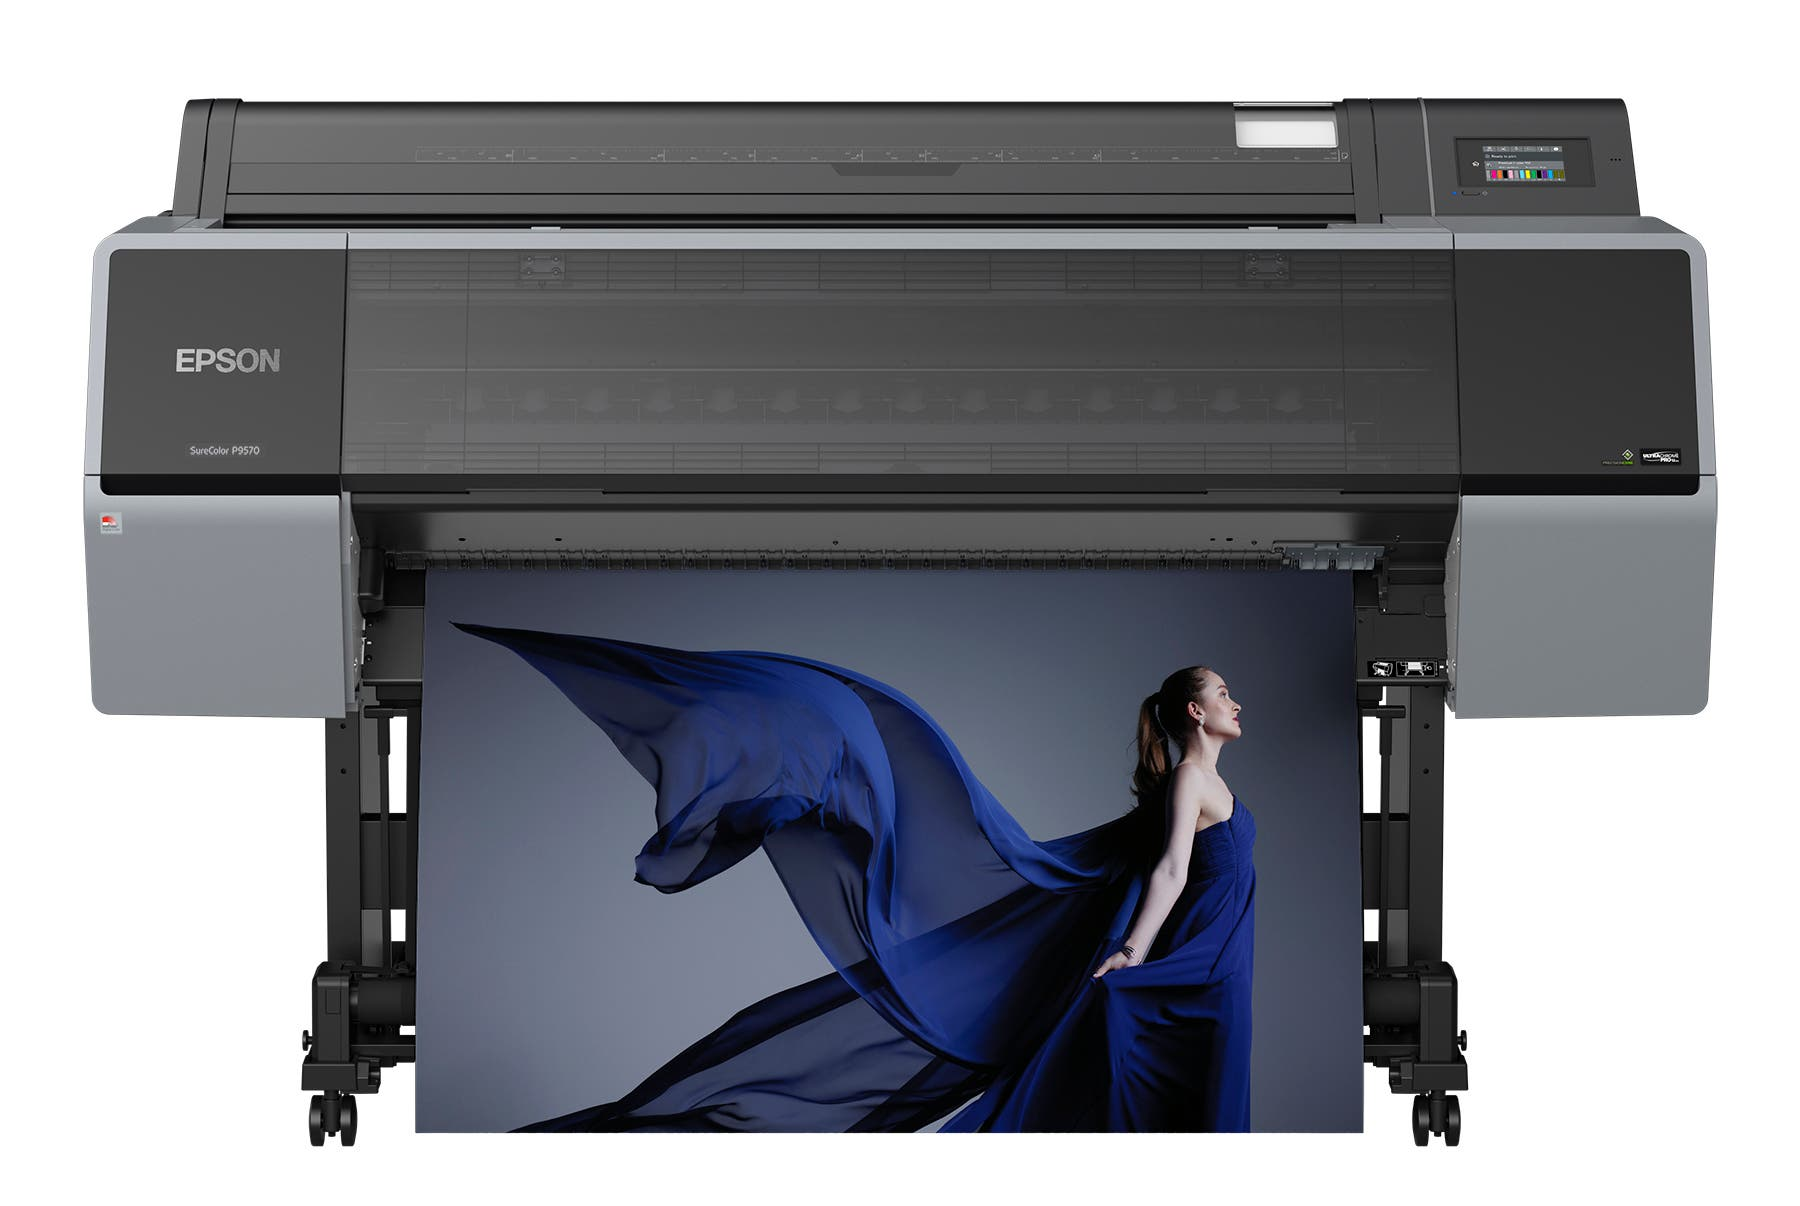 The P7570 and P9570 Epson Wide-Format Printers Use 12 Color Inks